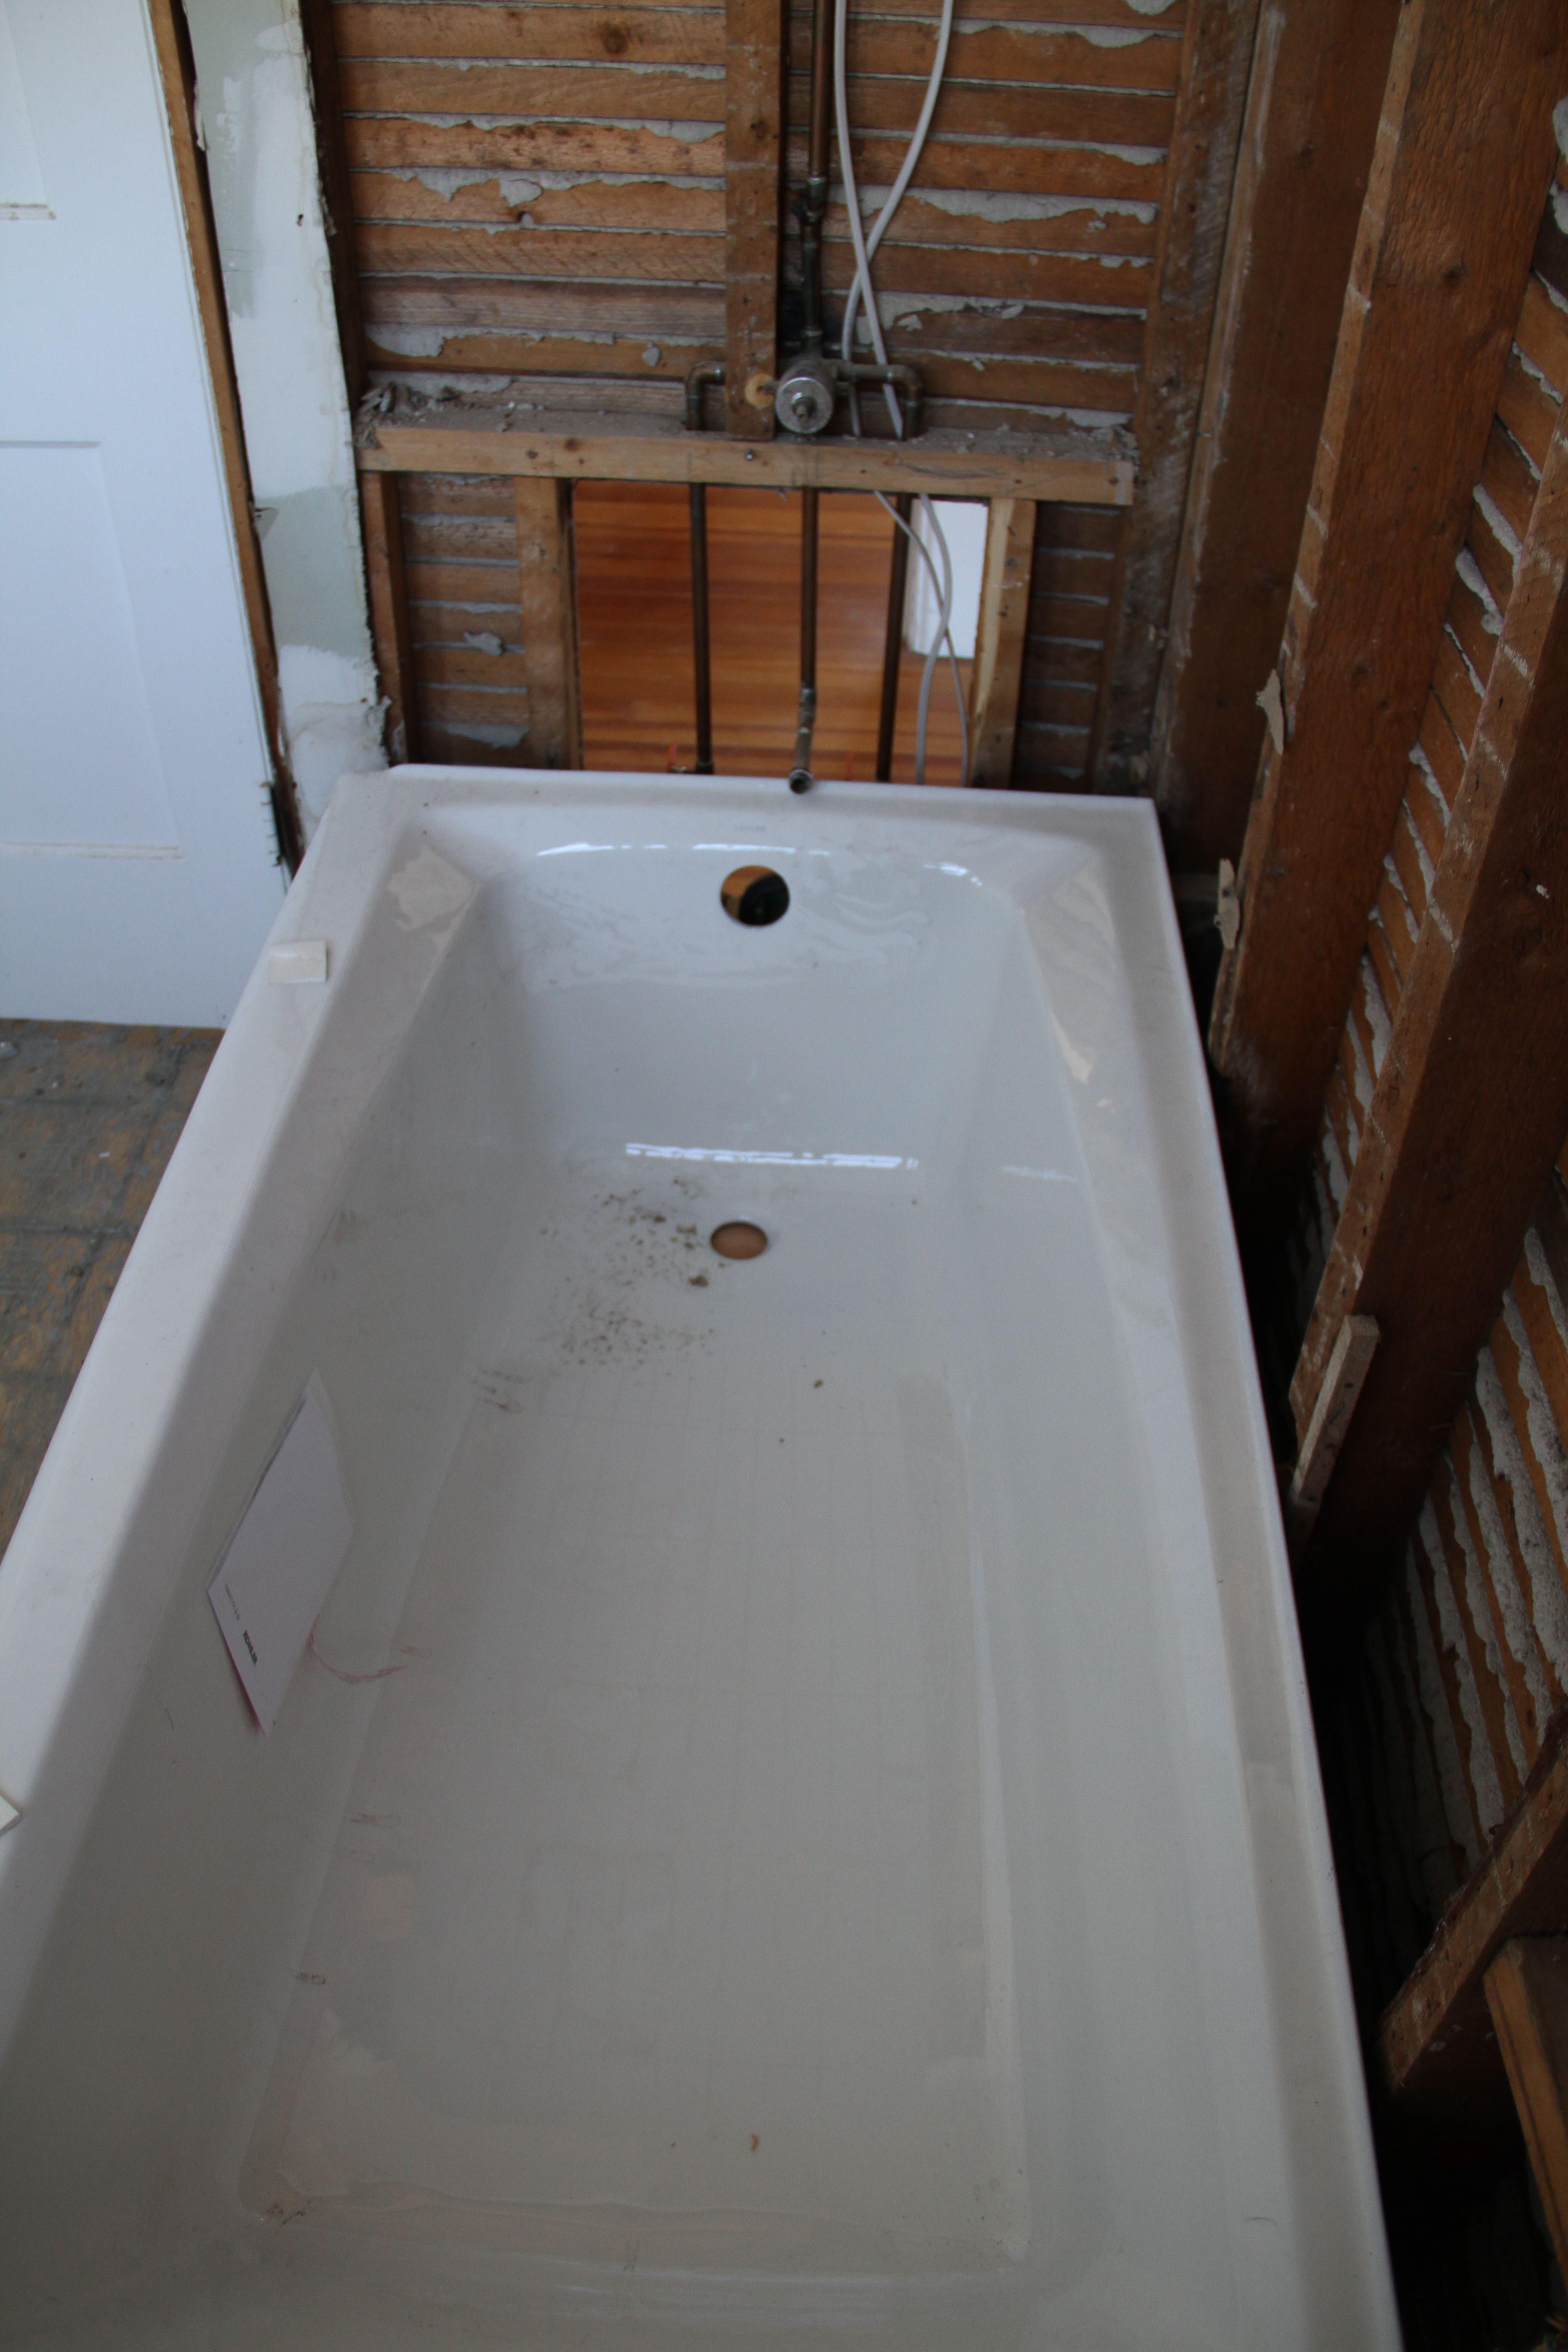 You can see better how the plumbing didn't line up with the new tub. But only barely. Enough to matter.